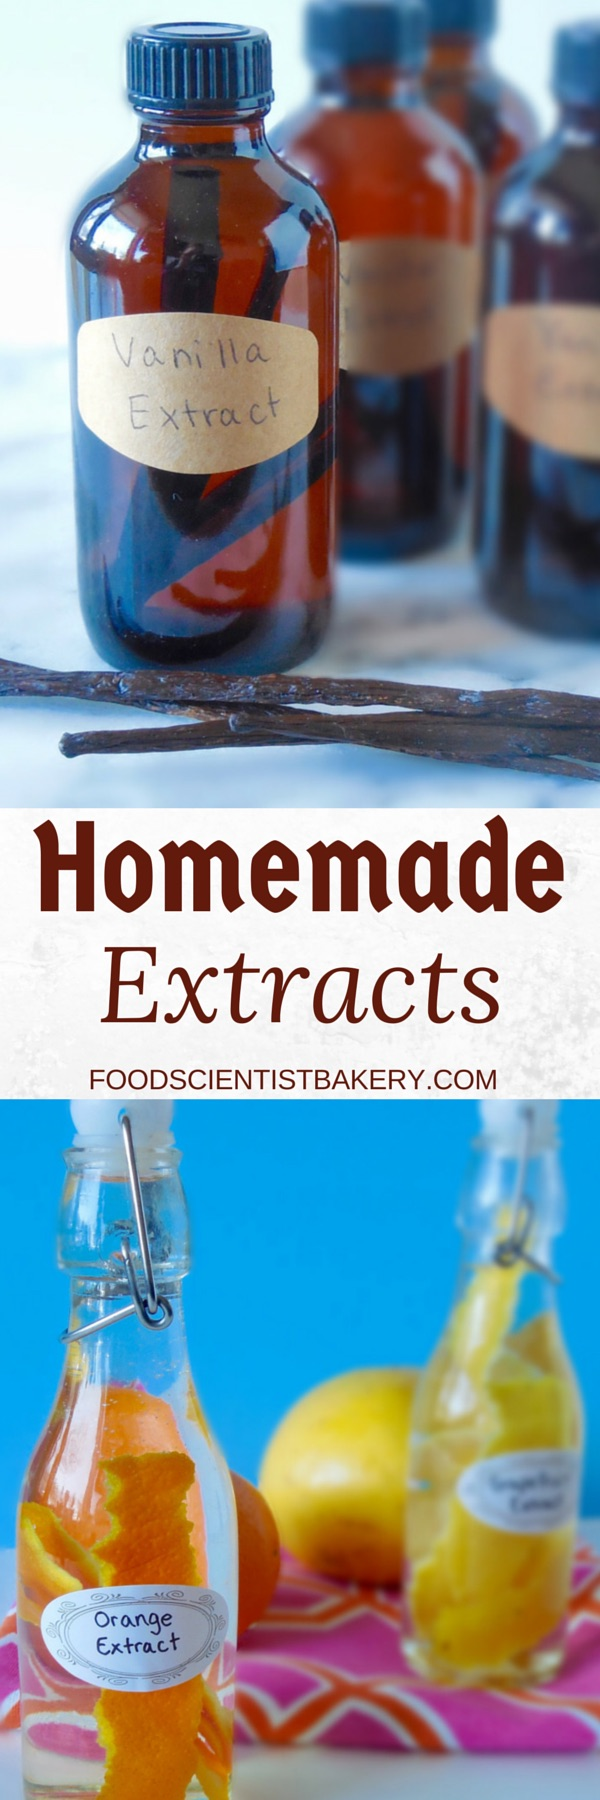 Only 2 ingredients to make your own extracts! Easy and economical!